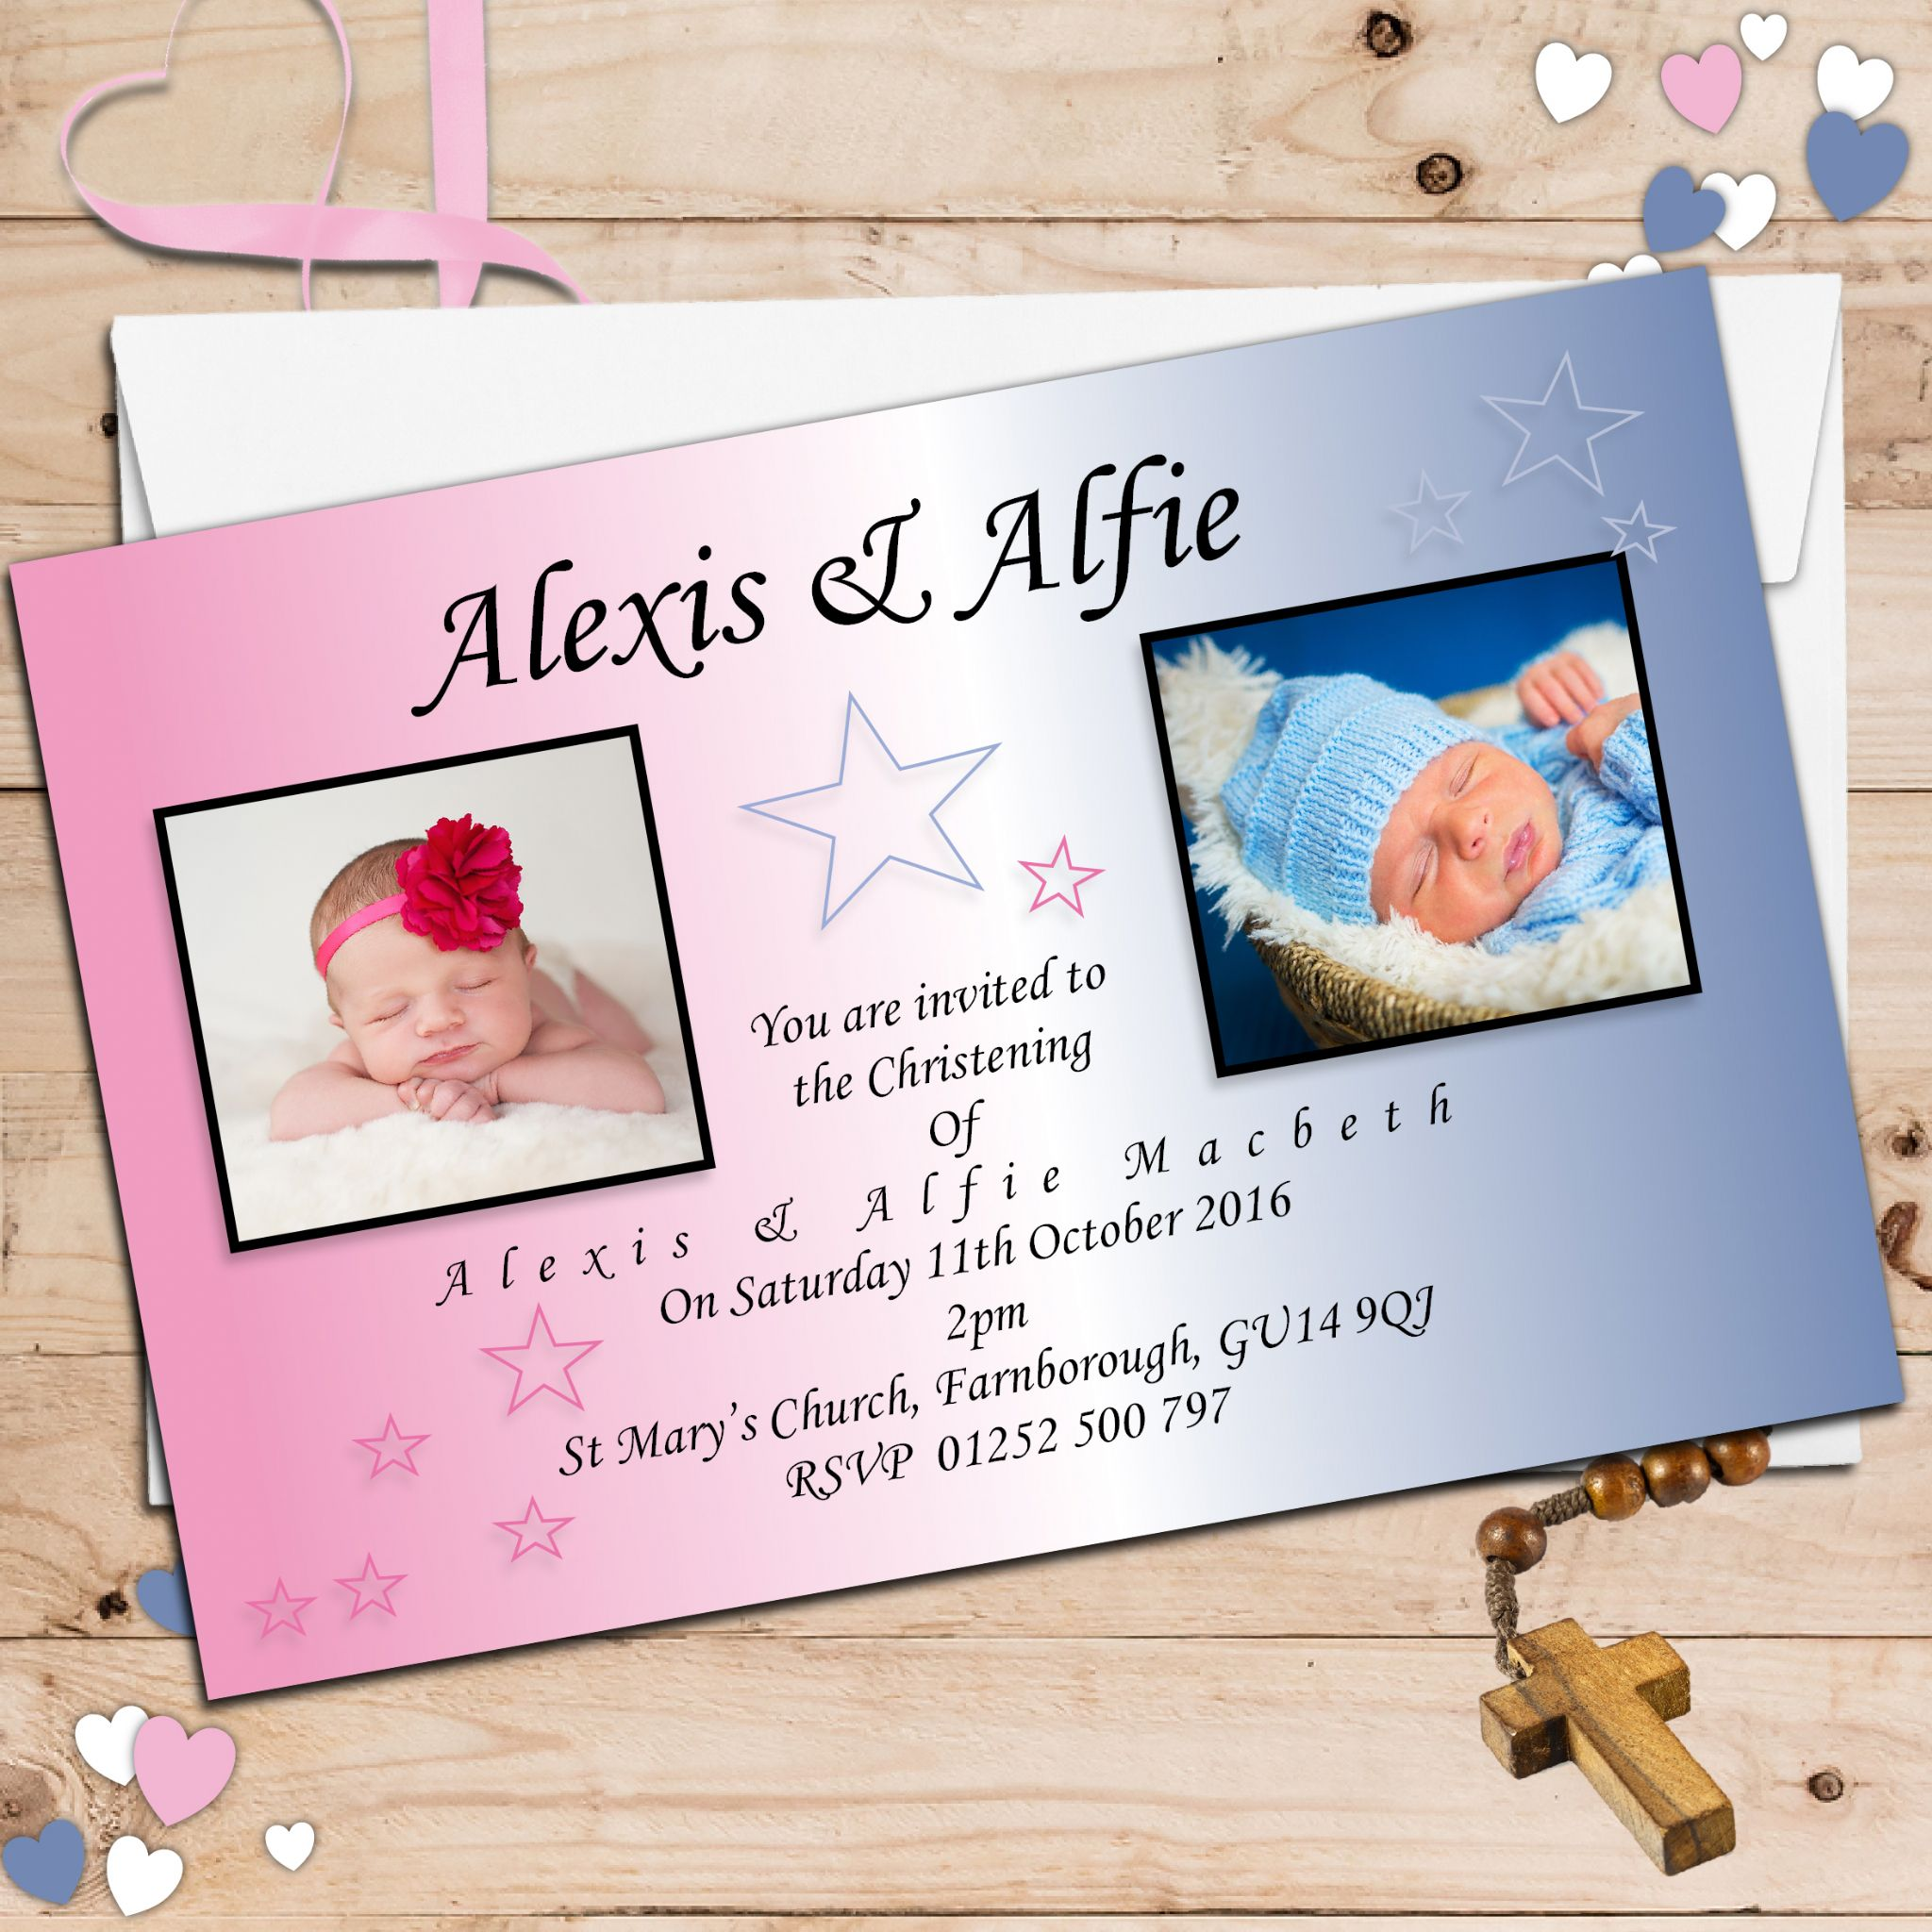 10 personalised twins joint baptism christening photo invitations n11 10 personalised twins joint baptism christening photo invitations n11 stopboris Images